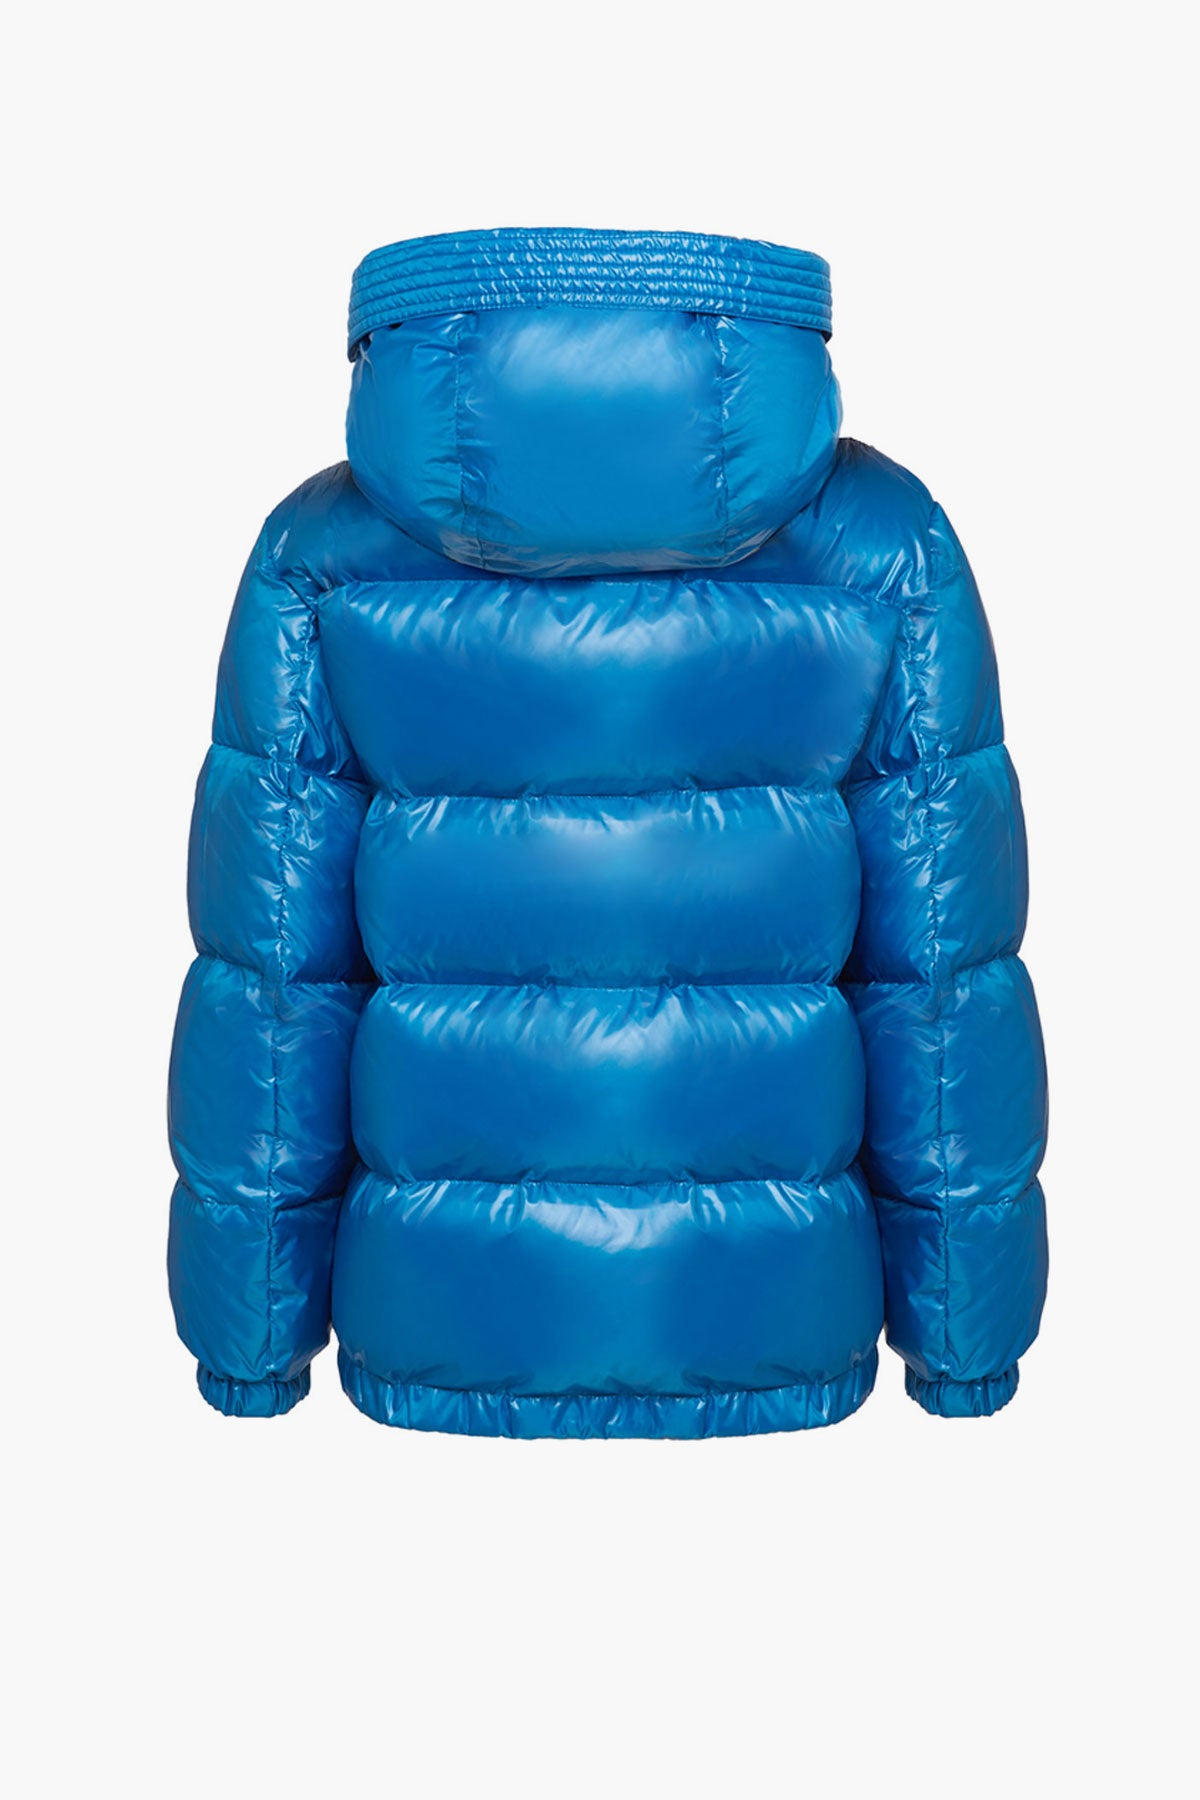 ADD Down Boys Down Jacket - Atlantic Blue